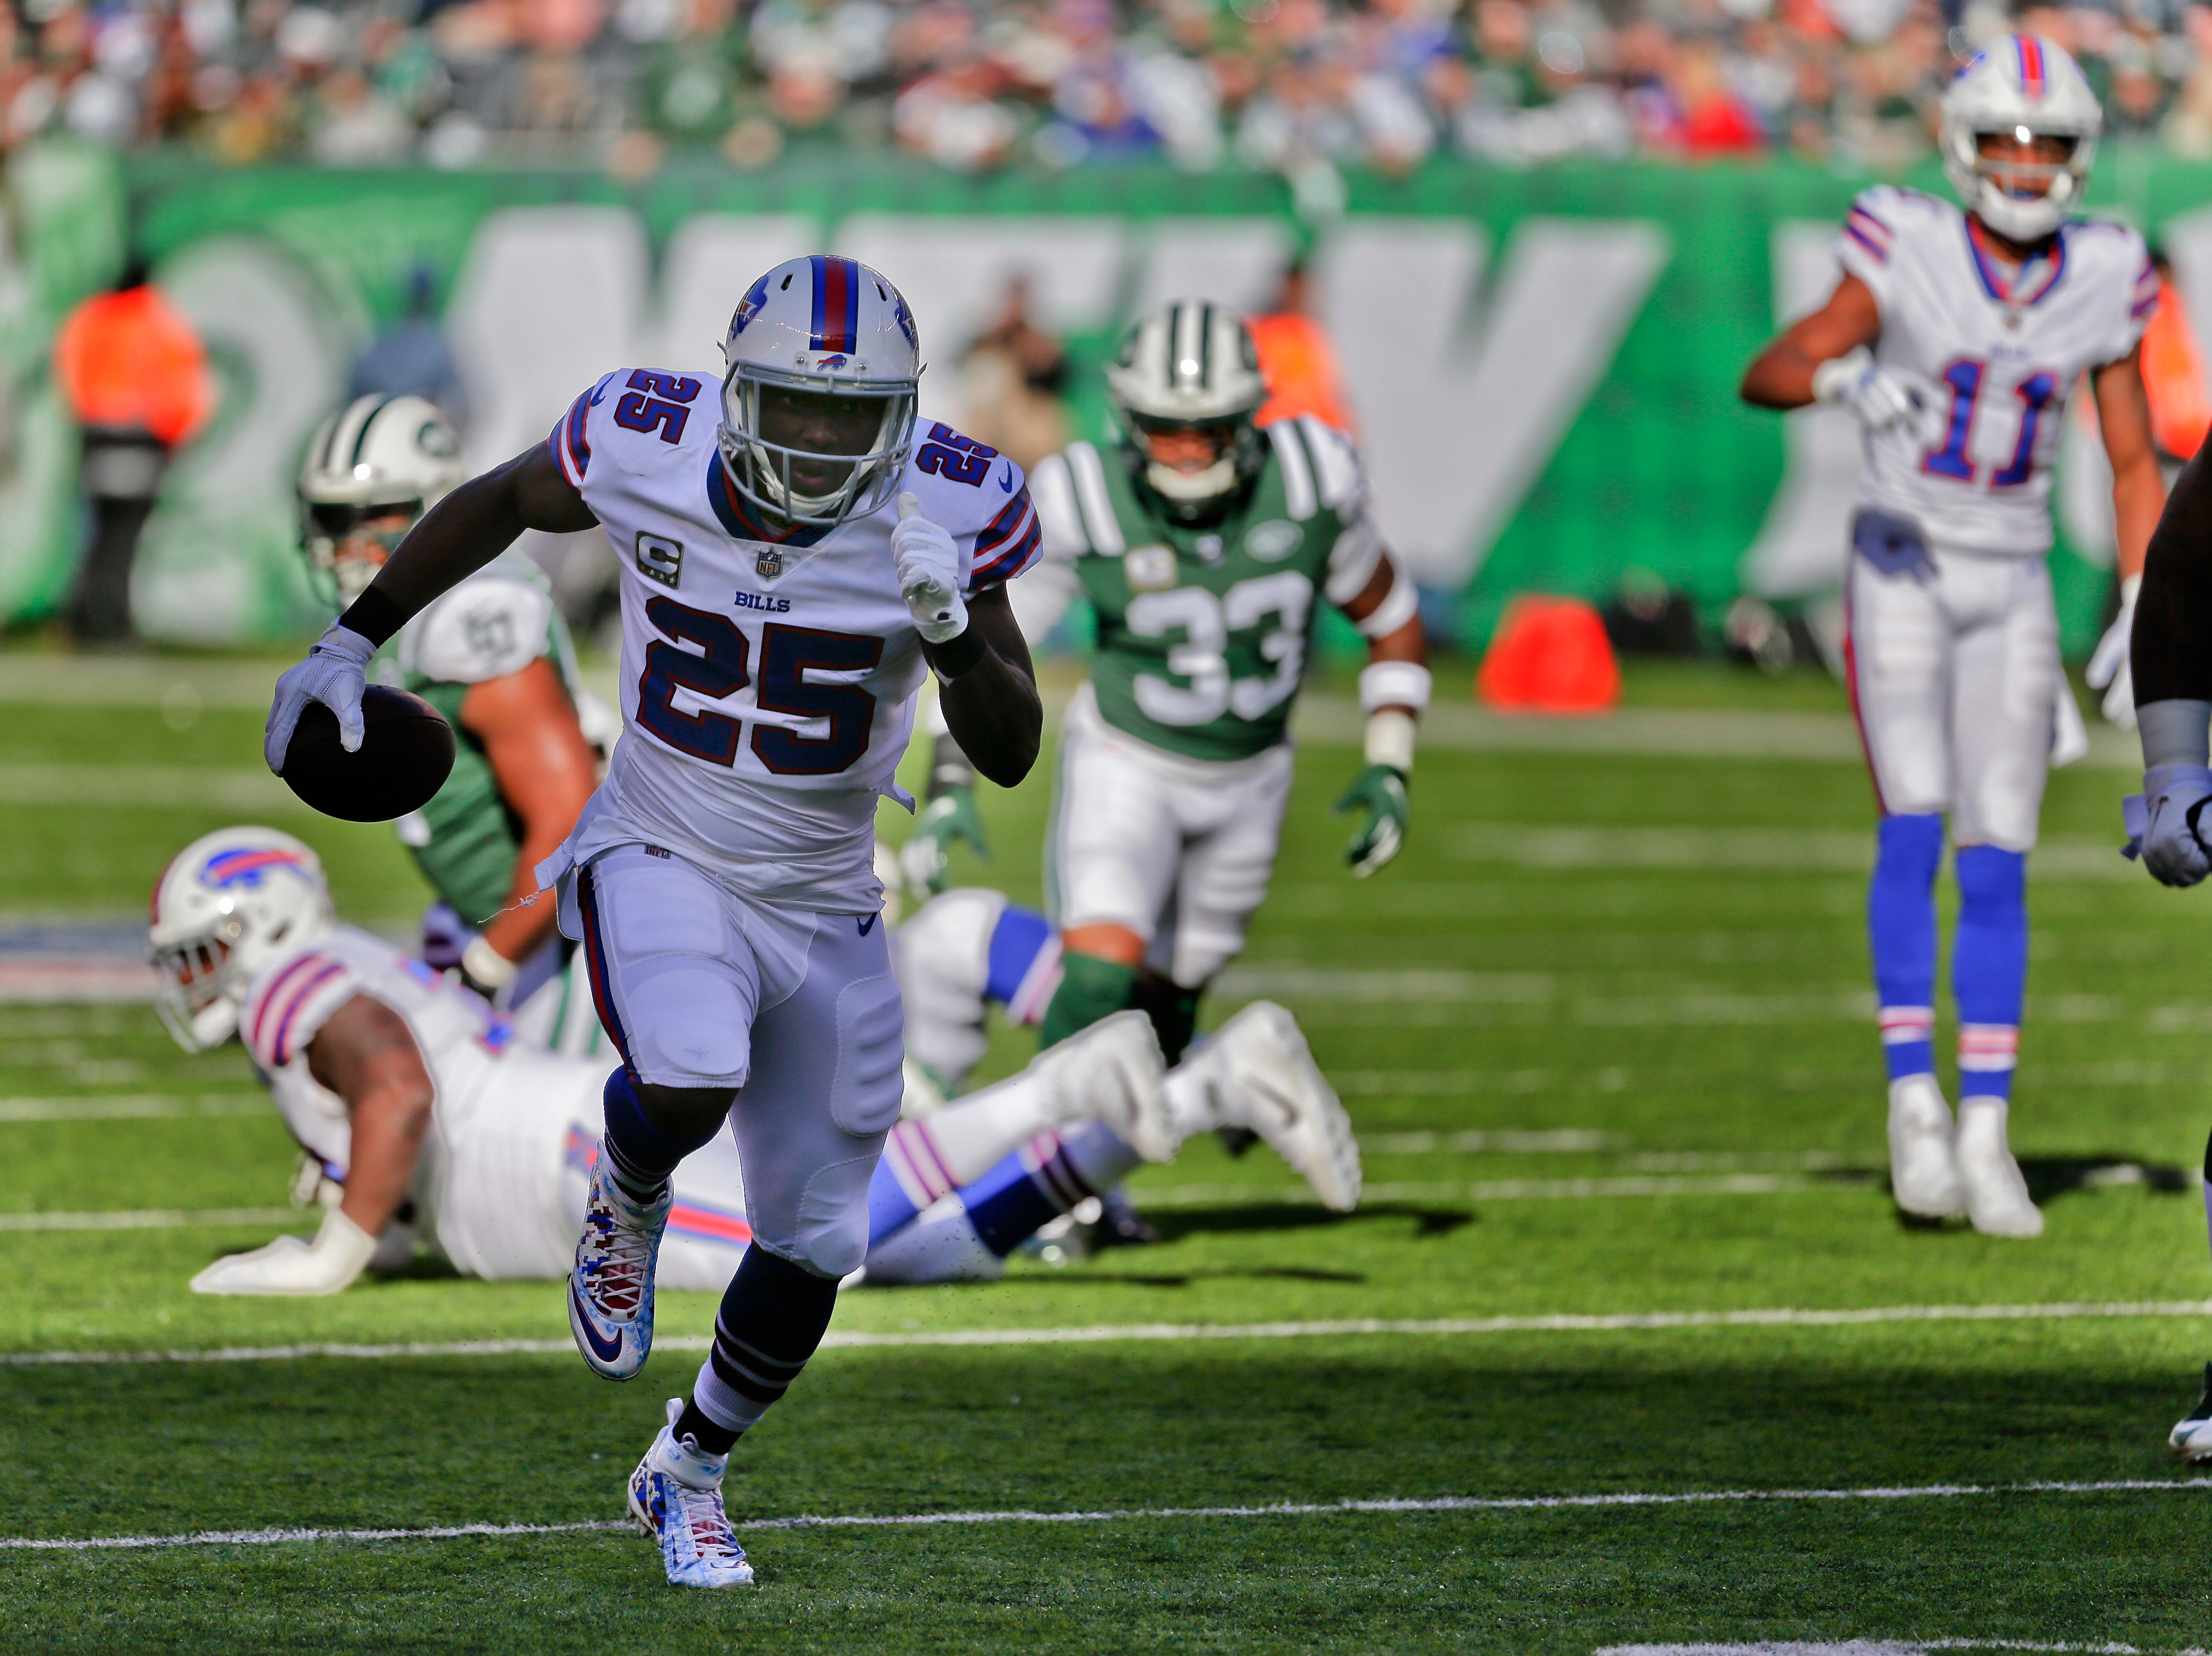 Buffalo Bills running back LeSean McCoy (25) makes a touchdown run against the New York Jets during the first quarter of an NFL football game, Sunday, Nov. 11, 2018, in East Rutherford, N.J. (AP Photo/Seth Wenig)